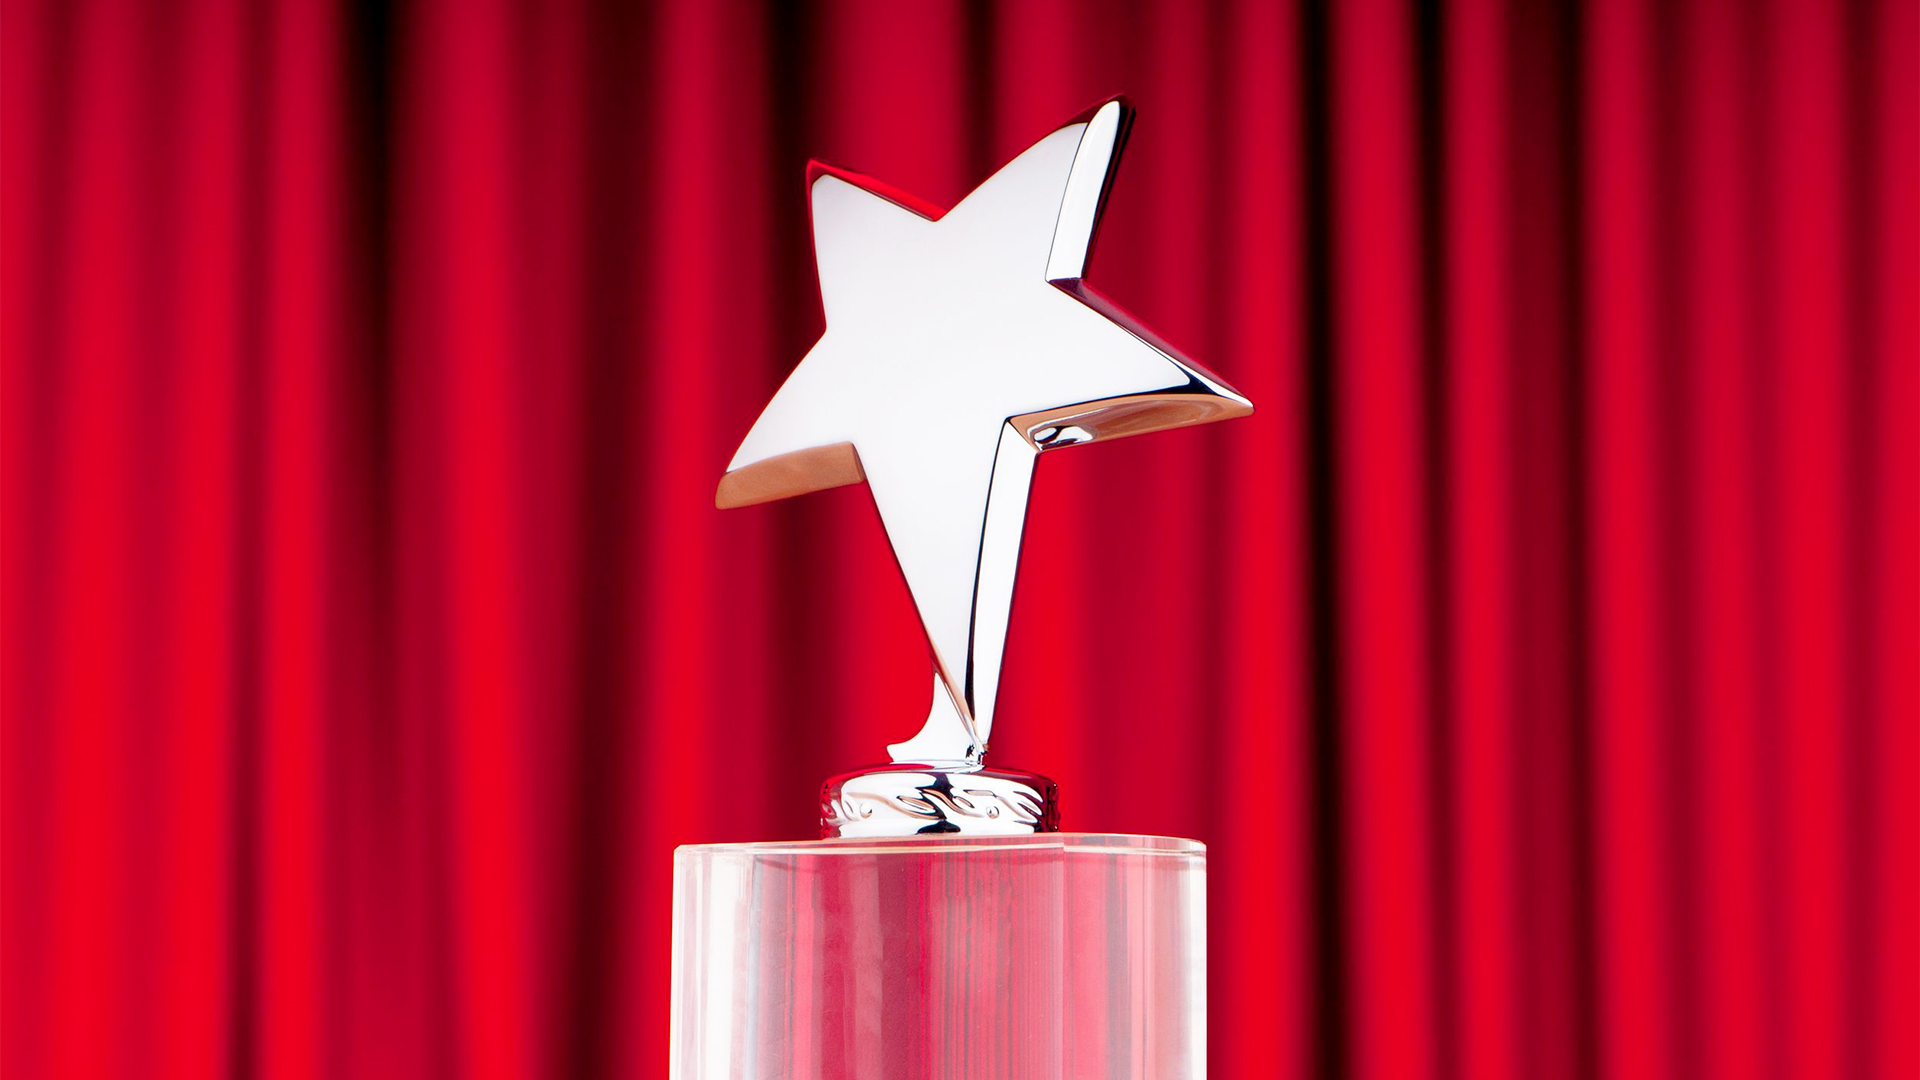 award in shape of 5 point star